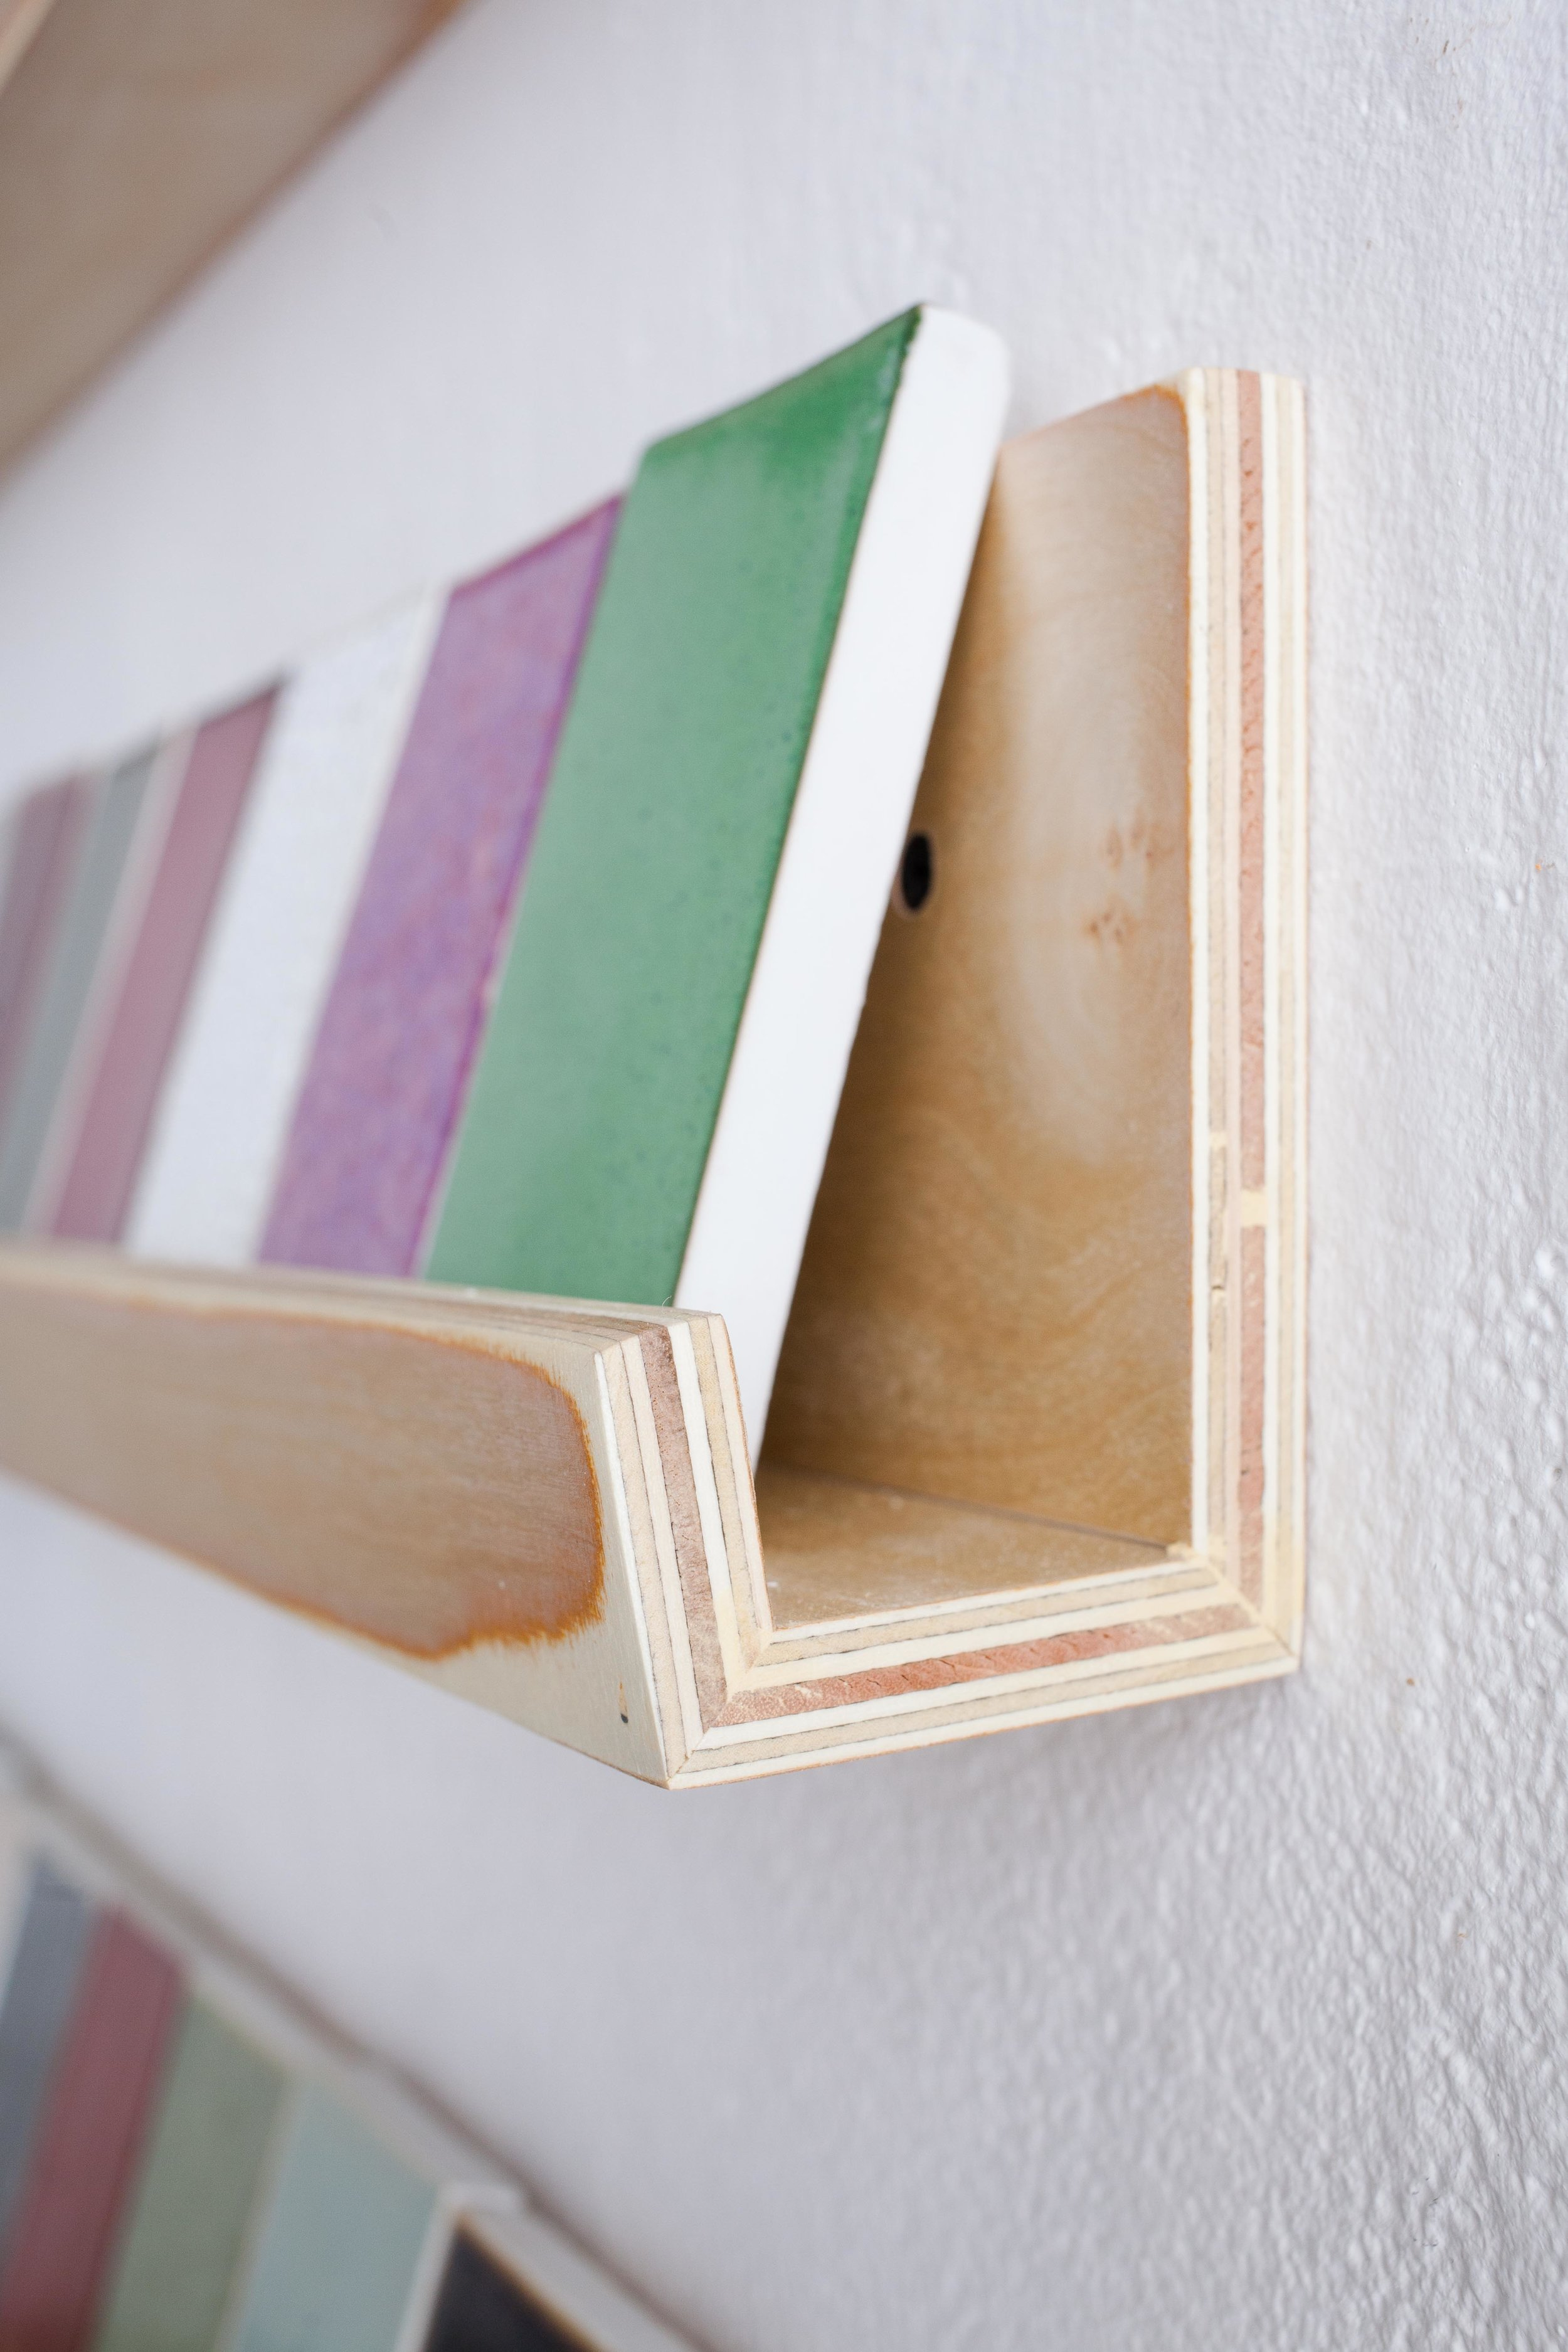 Library of Color C.jpg